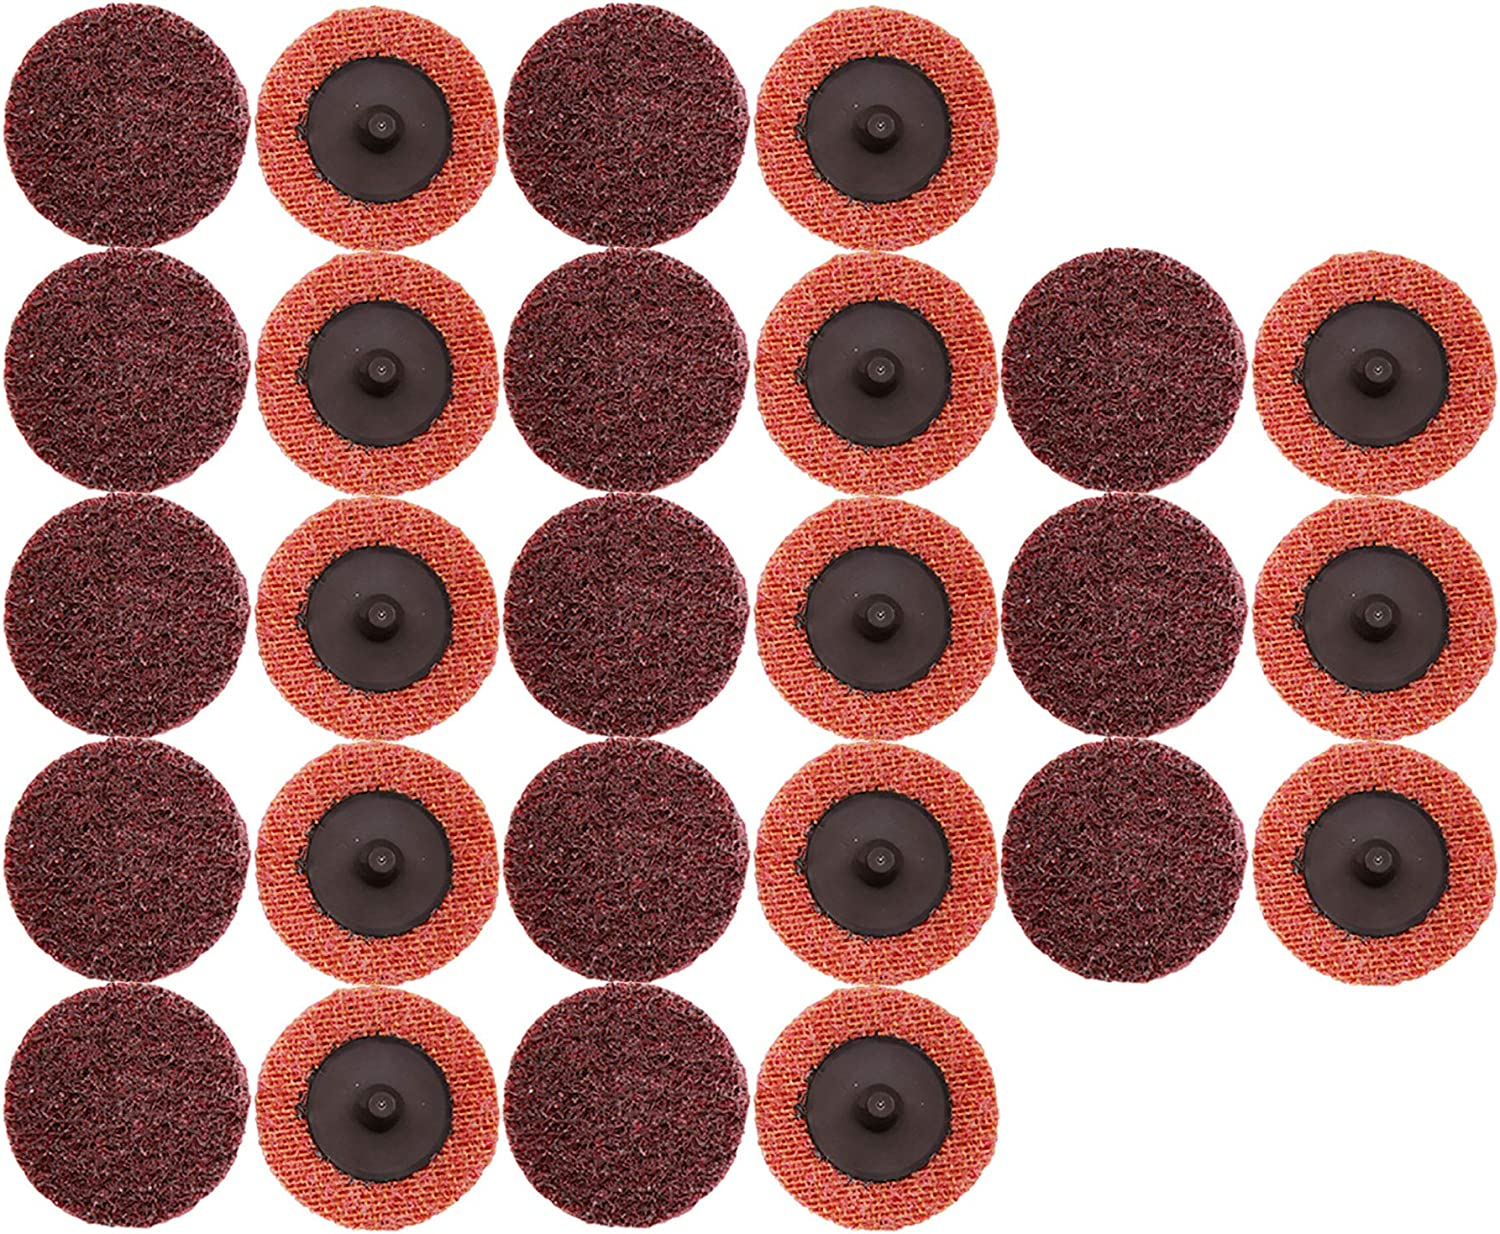 COSPOF 2 Inch Roloc Sanding Disc,Surface Conditioning Disc,Easy for Quick Change,Features Better Surface Quality and Heat Dissipation -26 Pack (Red-Medium). 81RCKfI6IZL